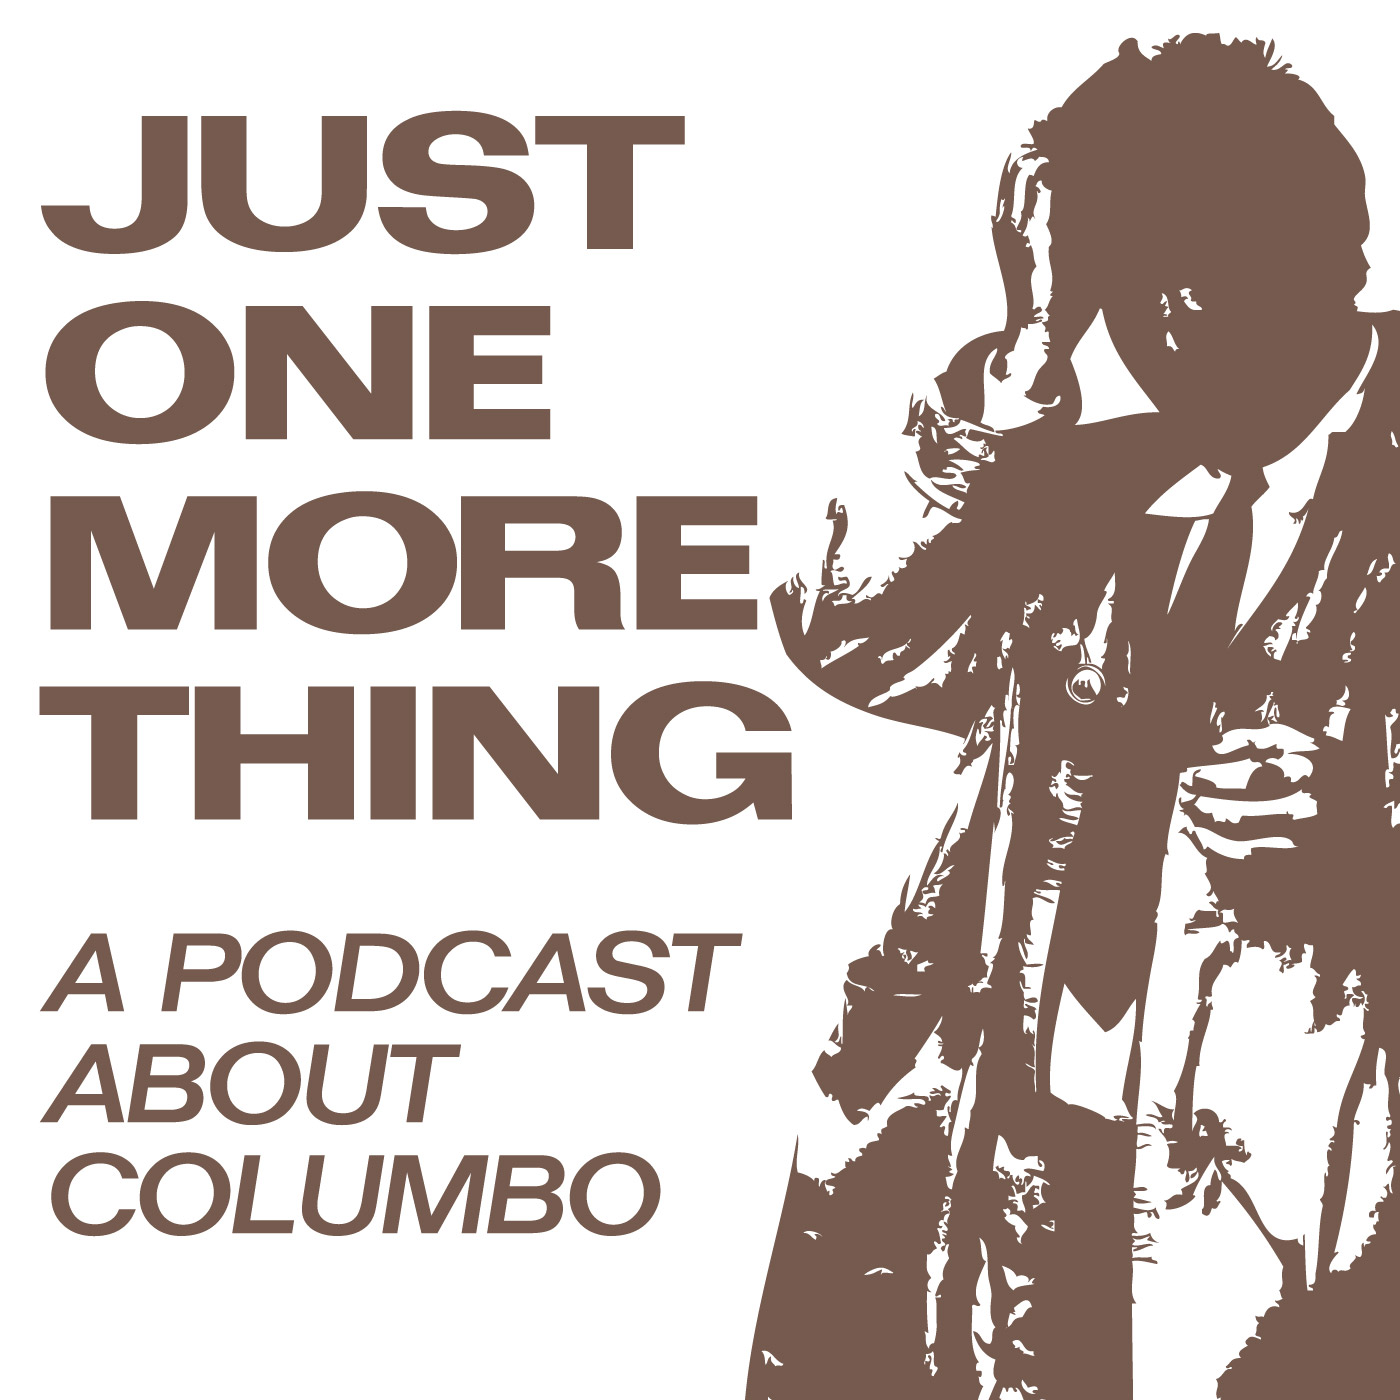 Just One More Thing: A Podcast About Columbo